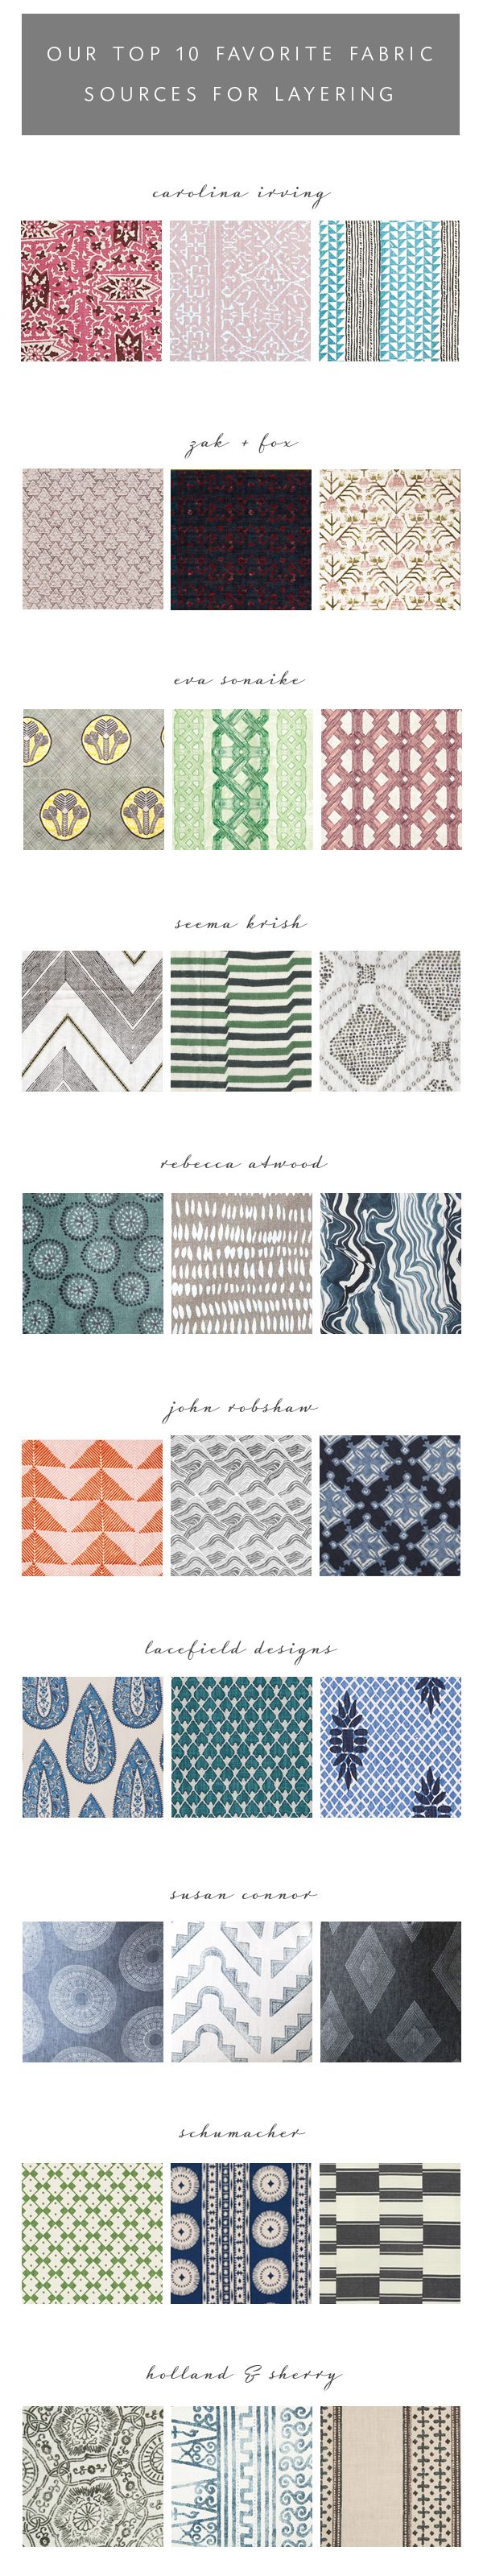 282 best Fabric images on Pinterest | Color palettes, Drapery fabric ...